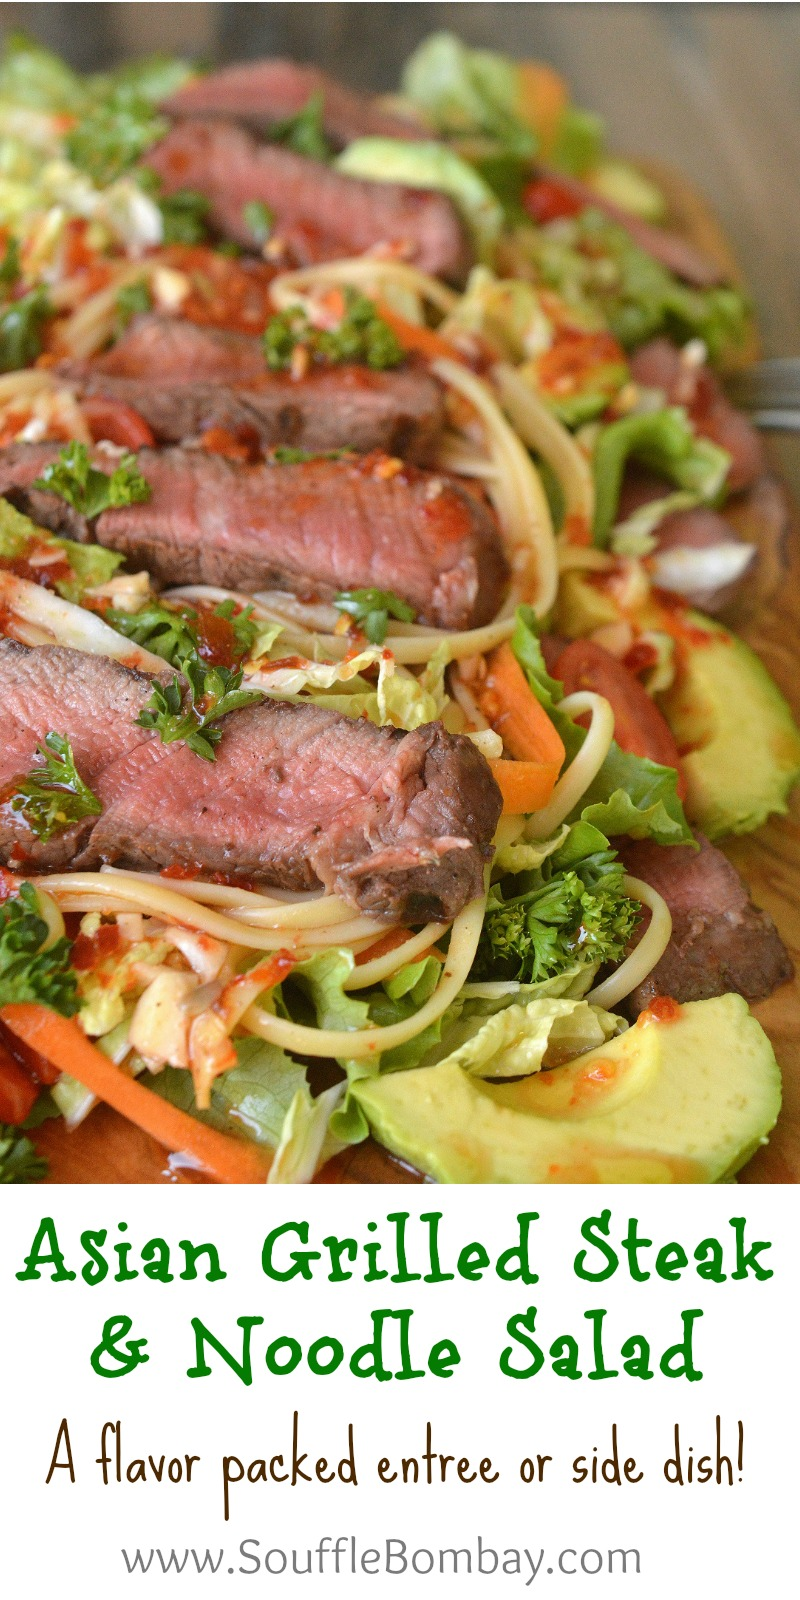 Asian Grilled Steak and Noodle Salad An impressive & flavor packed entree or side dish!